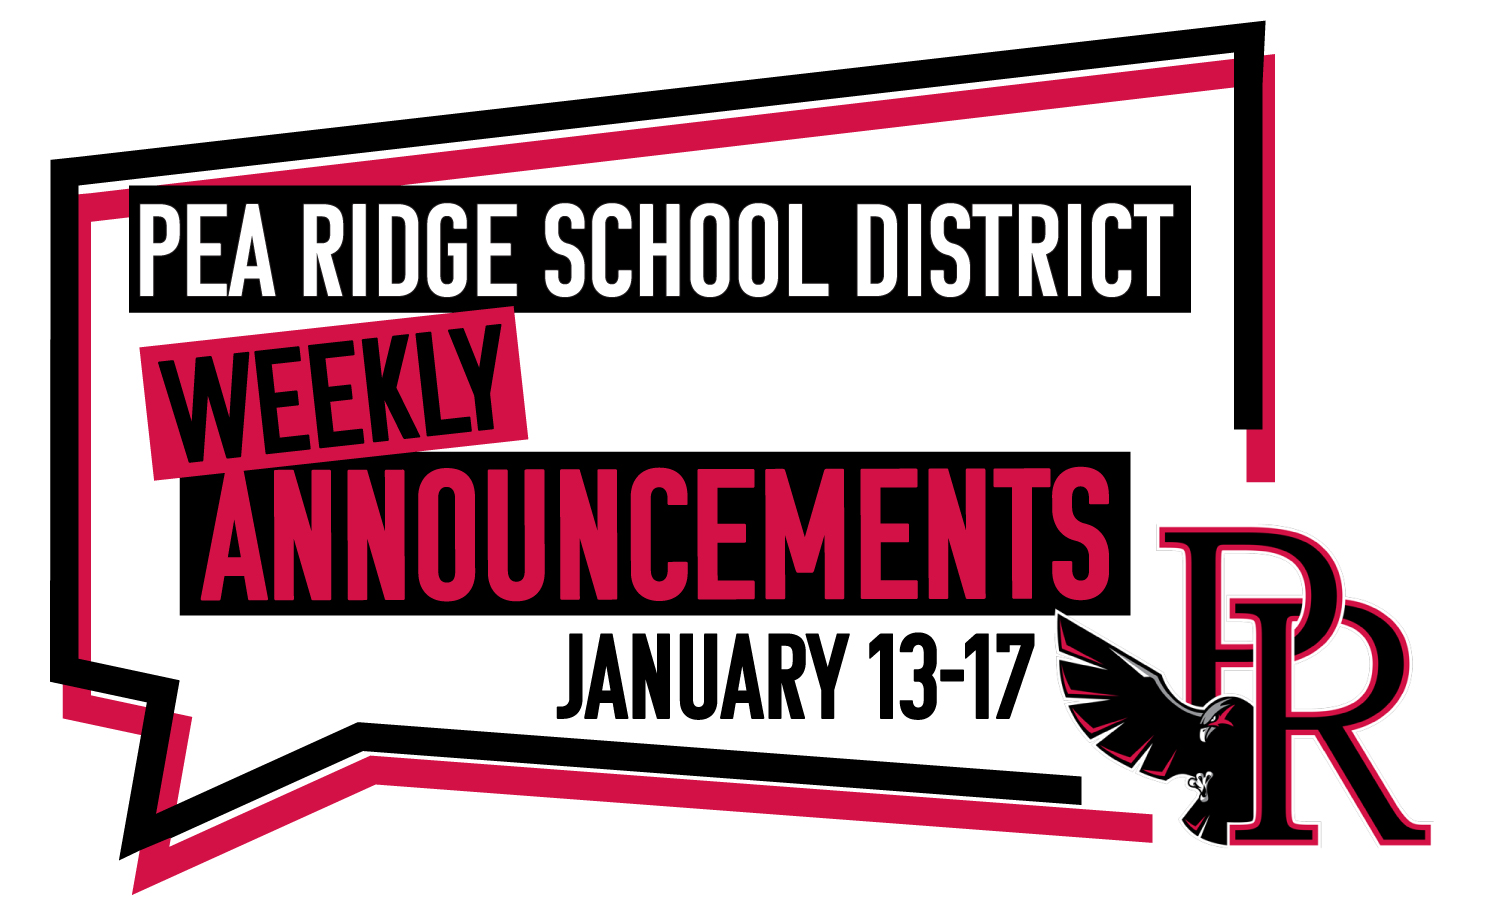 Weekly Announcements Jan. 13-17